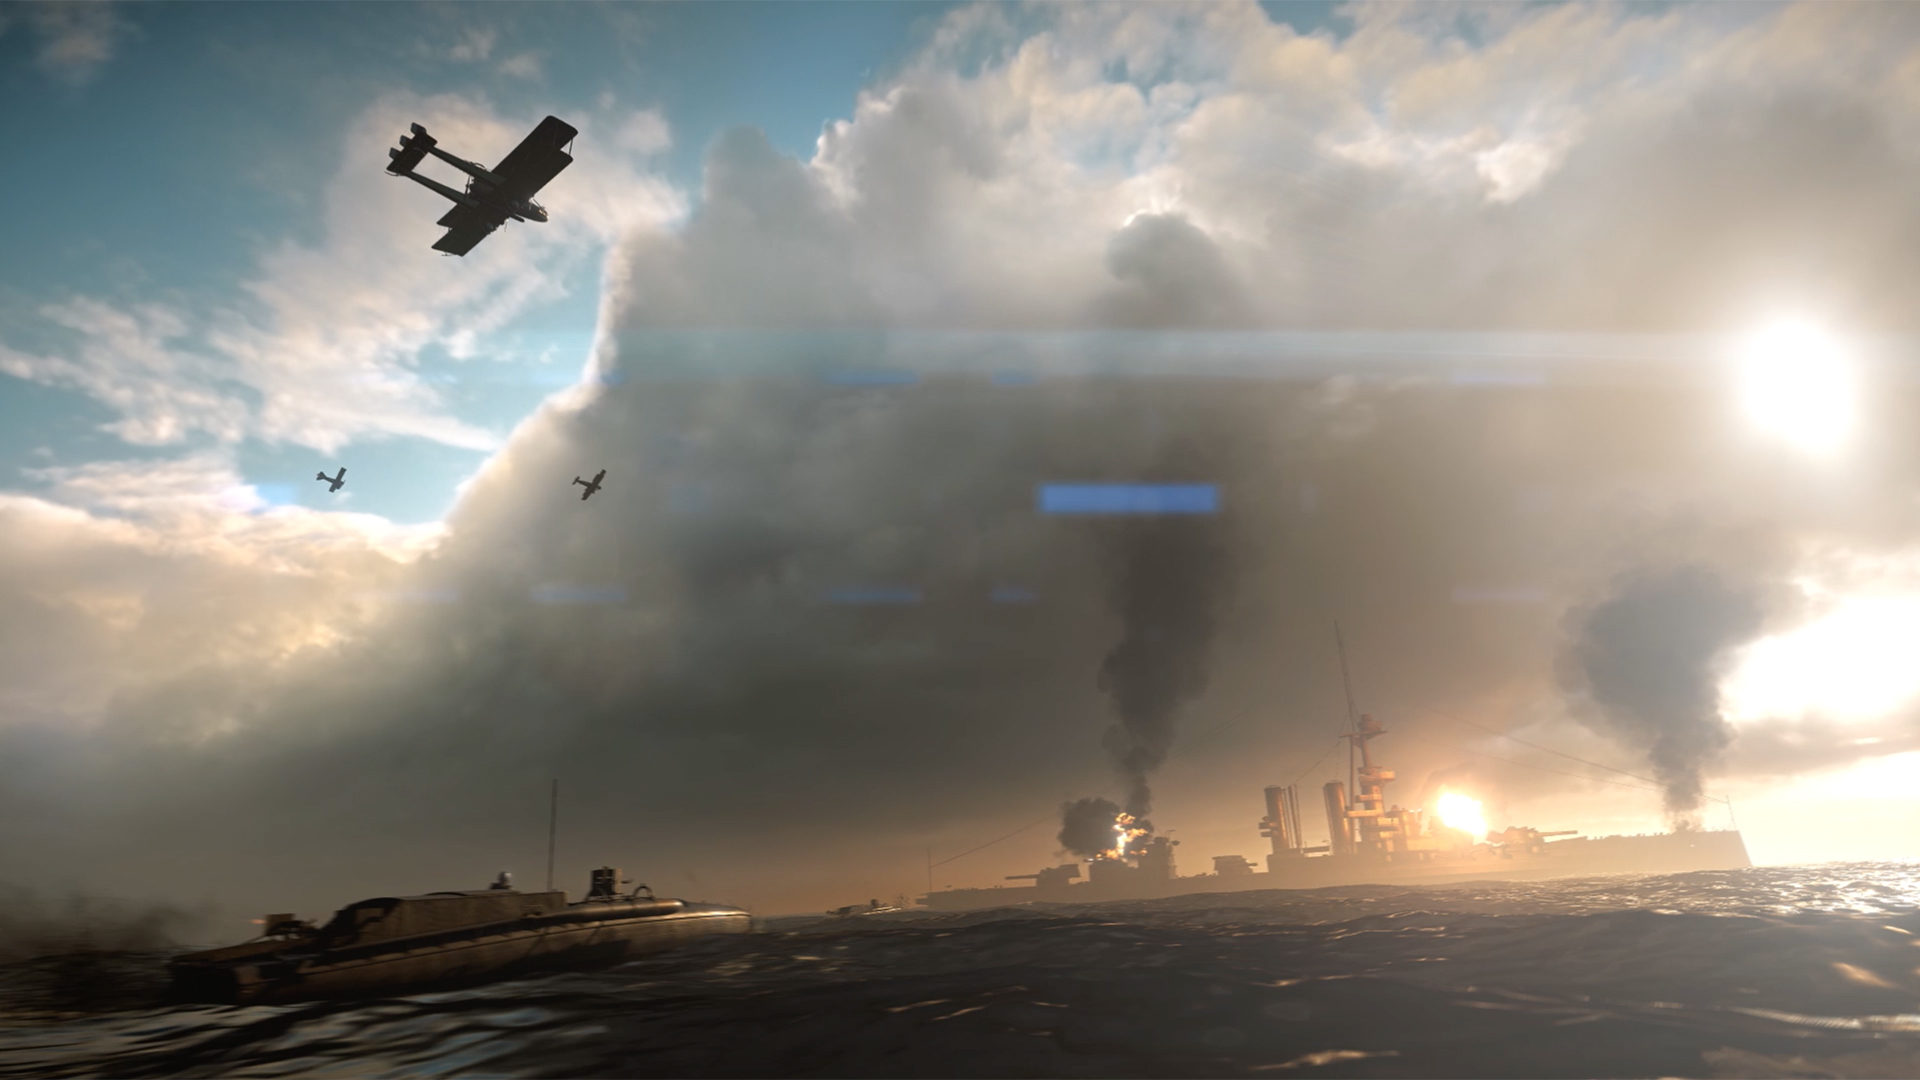 Battlefield 1 is now available on EA and Origins Access